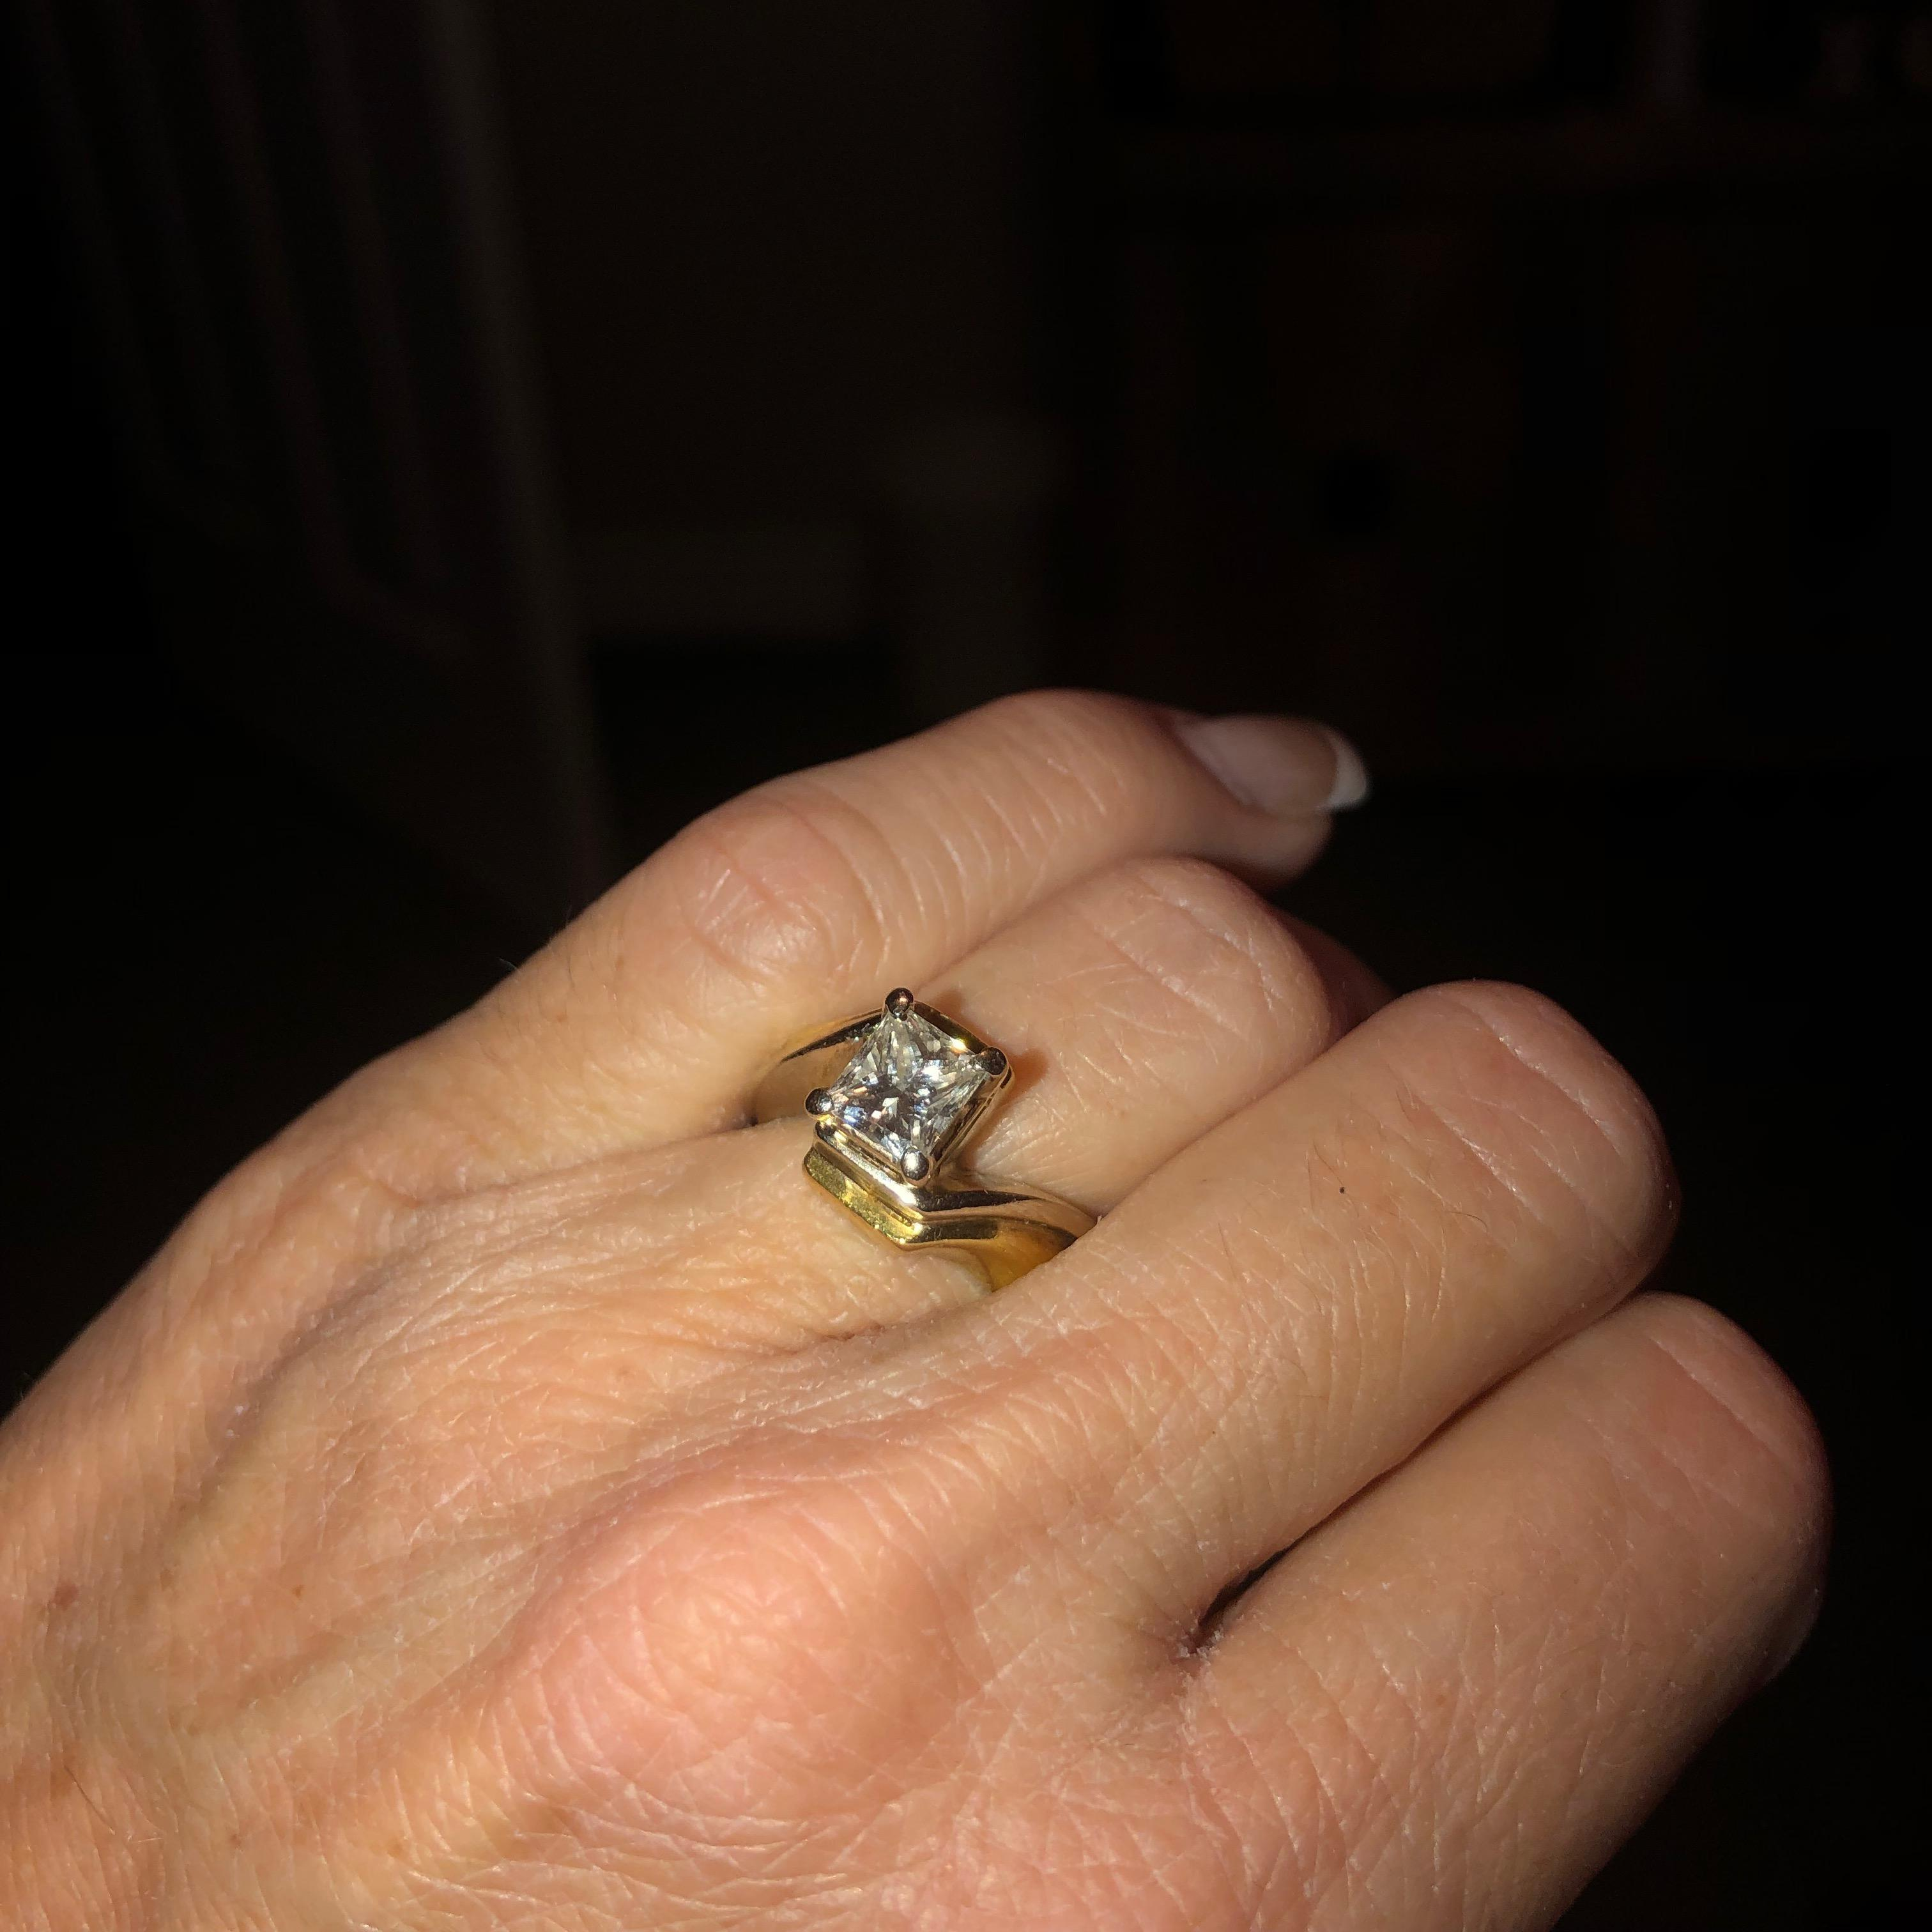 1 Carat Princess Cut White And Yellow Gold Wedding Ring I Do Now I Don T